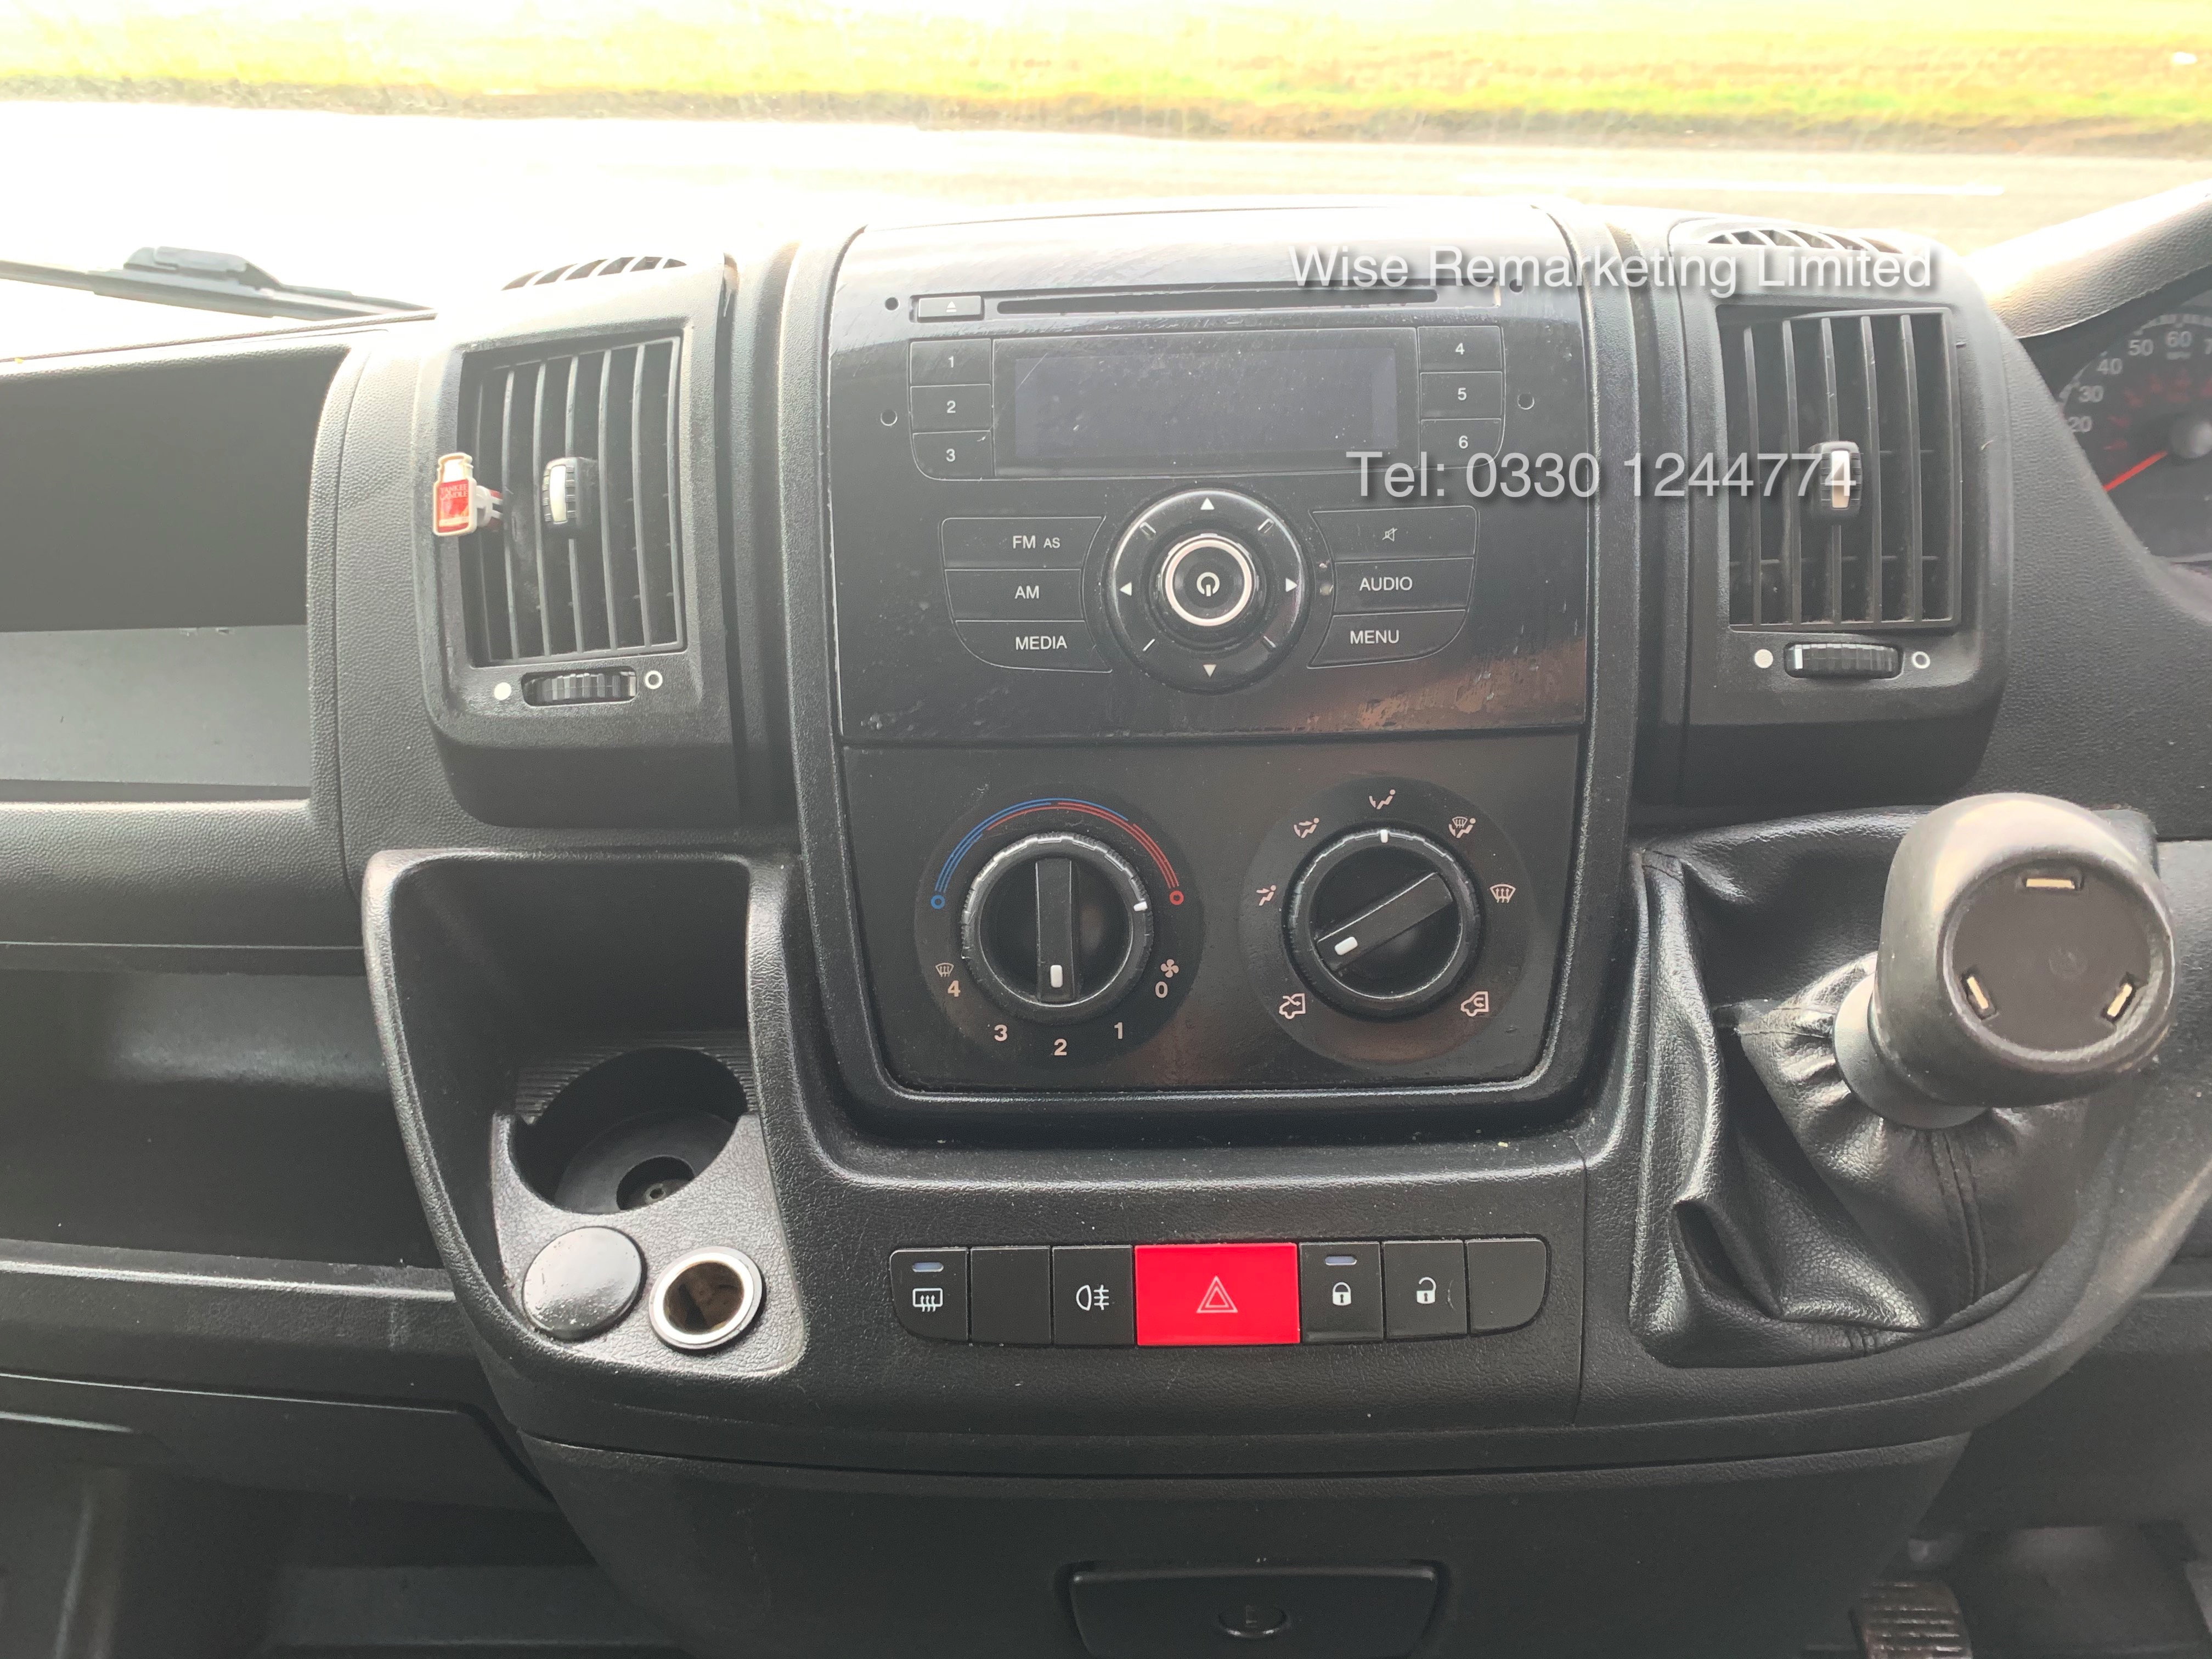 Peugeot Boxer 335 2.2 HDi (L3H2) 2014 Model - 1 Keeper From New - Long Wheel Base - Image 16 of 17